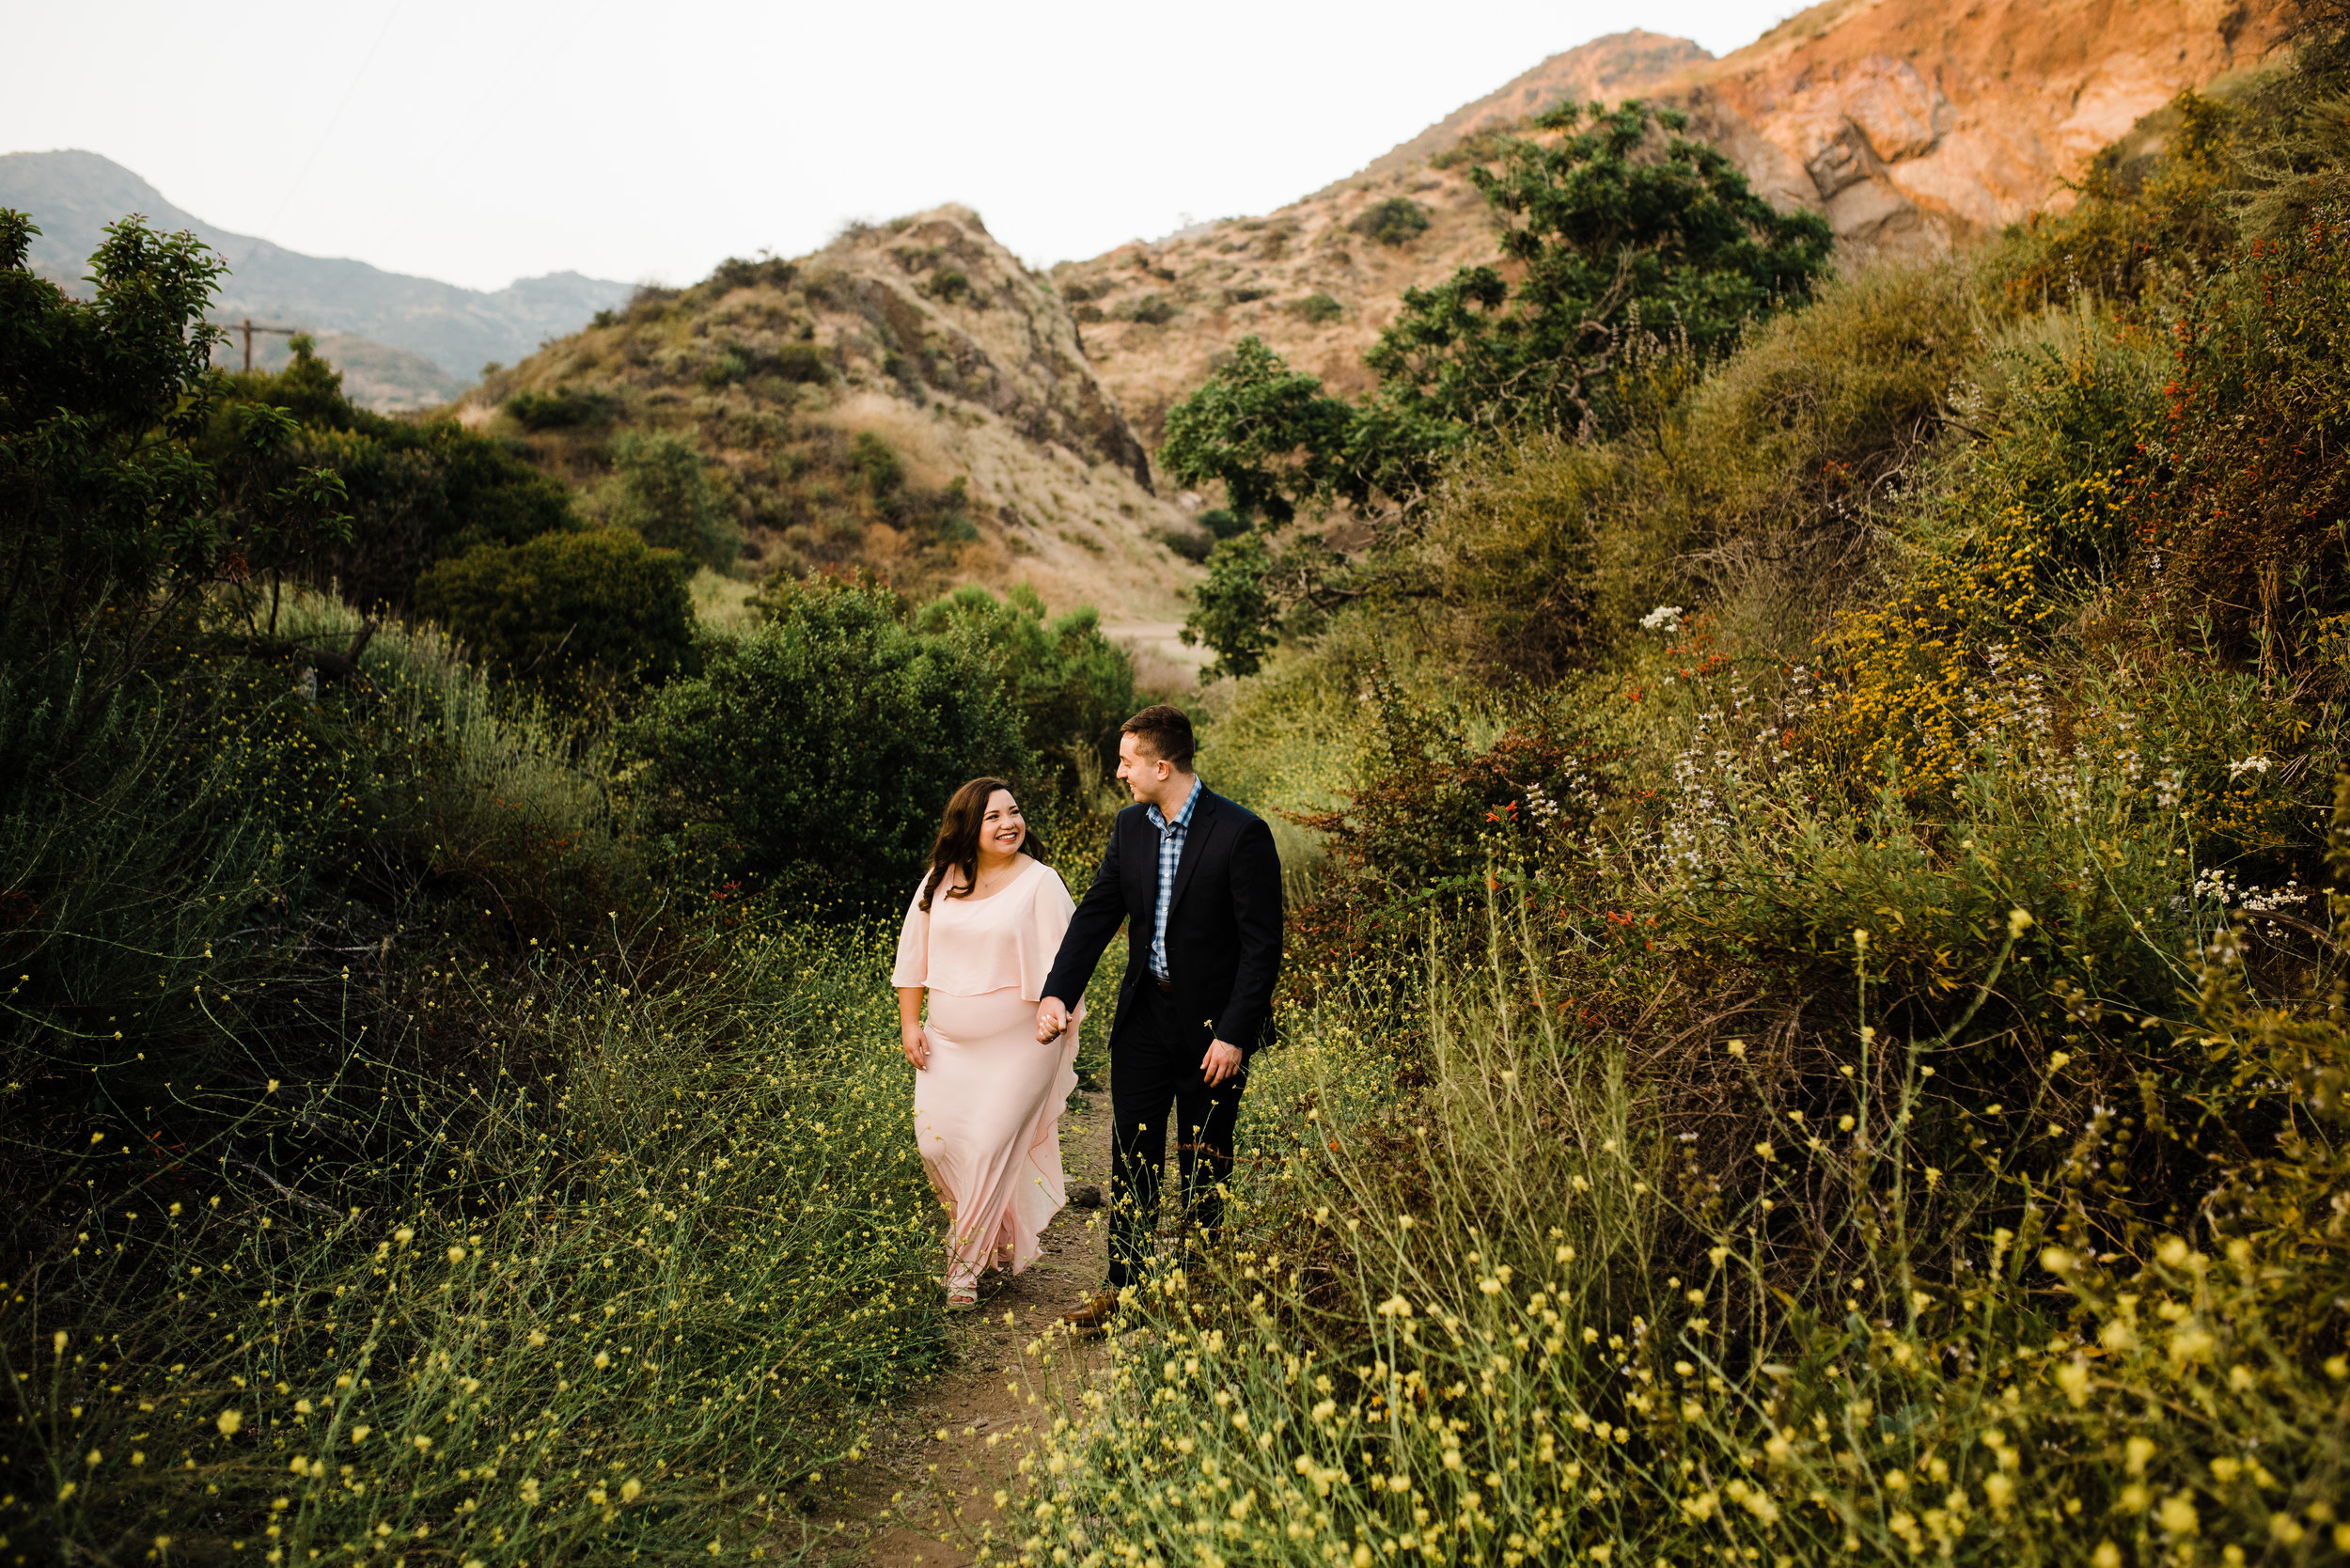 Formal wear at an adventurous engagement shoot in Los Angeles, California